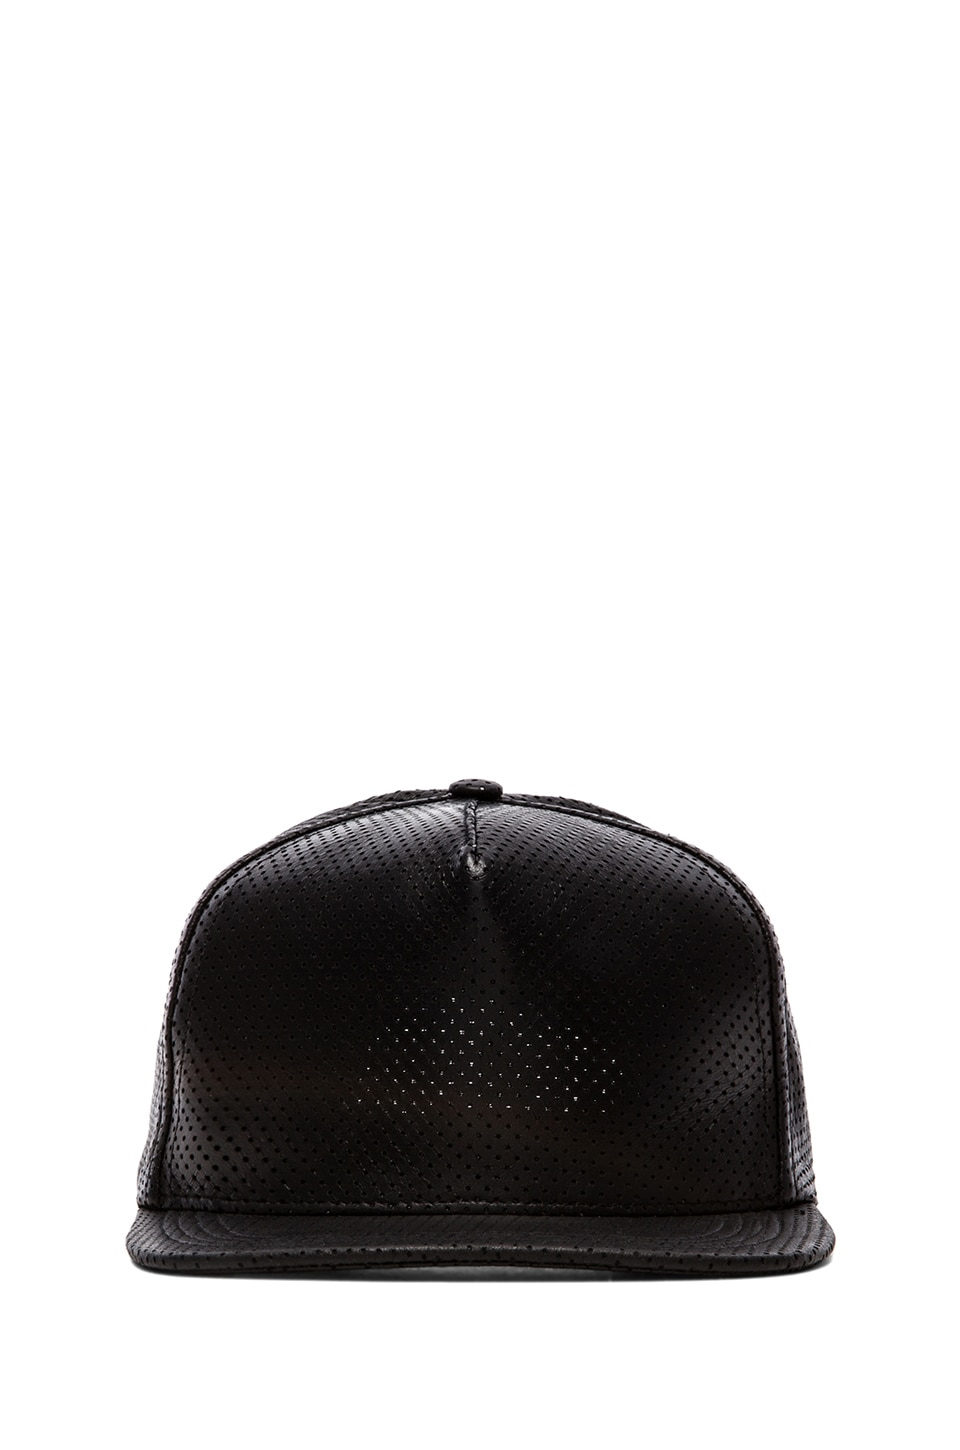 Cast of Vices Leather Hat in Black Perforated